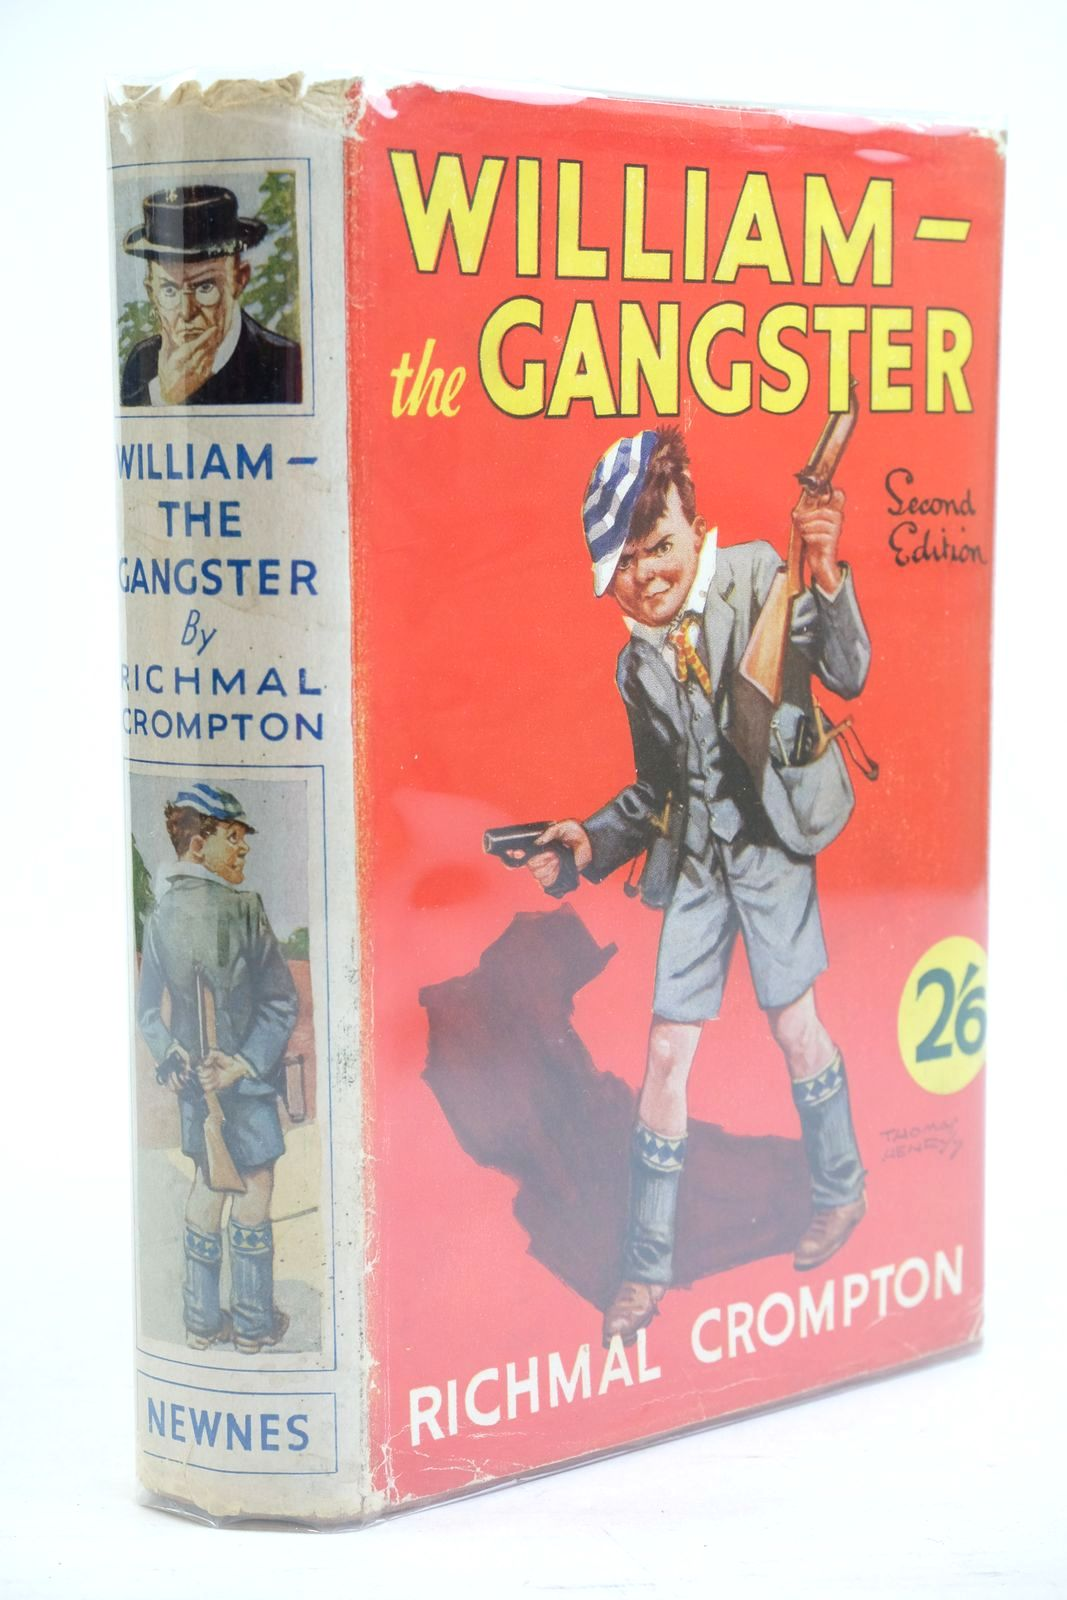 Photo of WILLIAM THE GANGSTER written by Crompton, Richmal illustrated by Henry, Thomas published by George Newnes Ltd. (STOCK CODE: 1320871)  for sale by Stella & Rose's Books